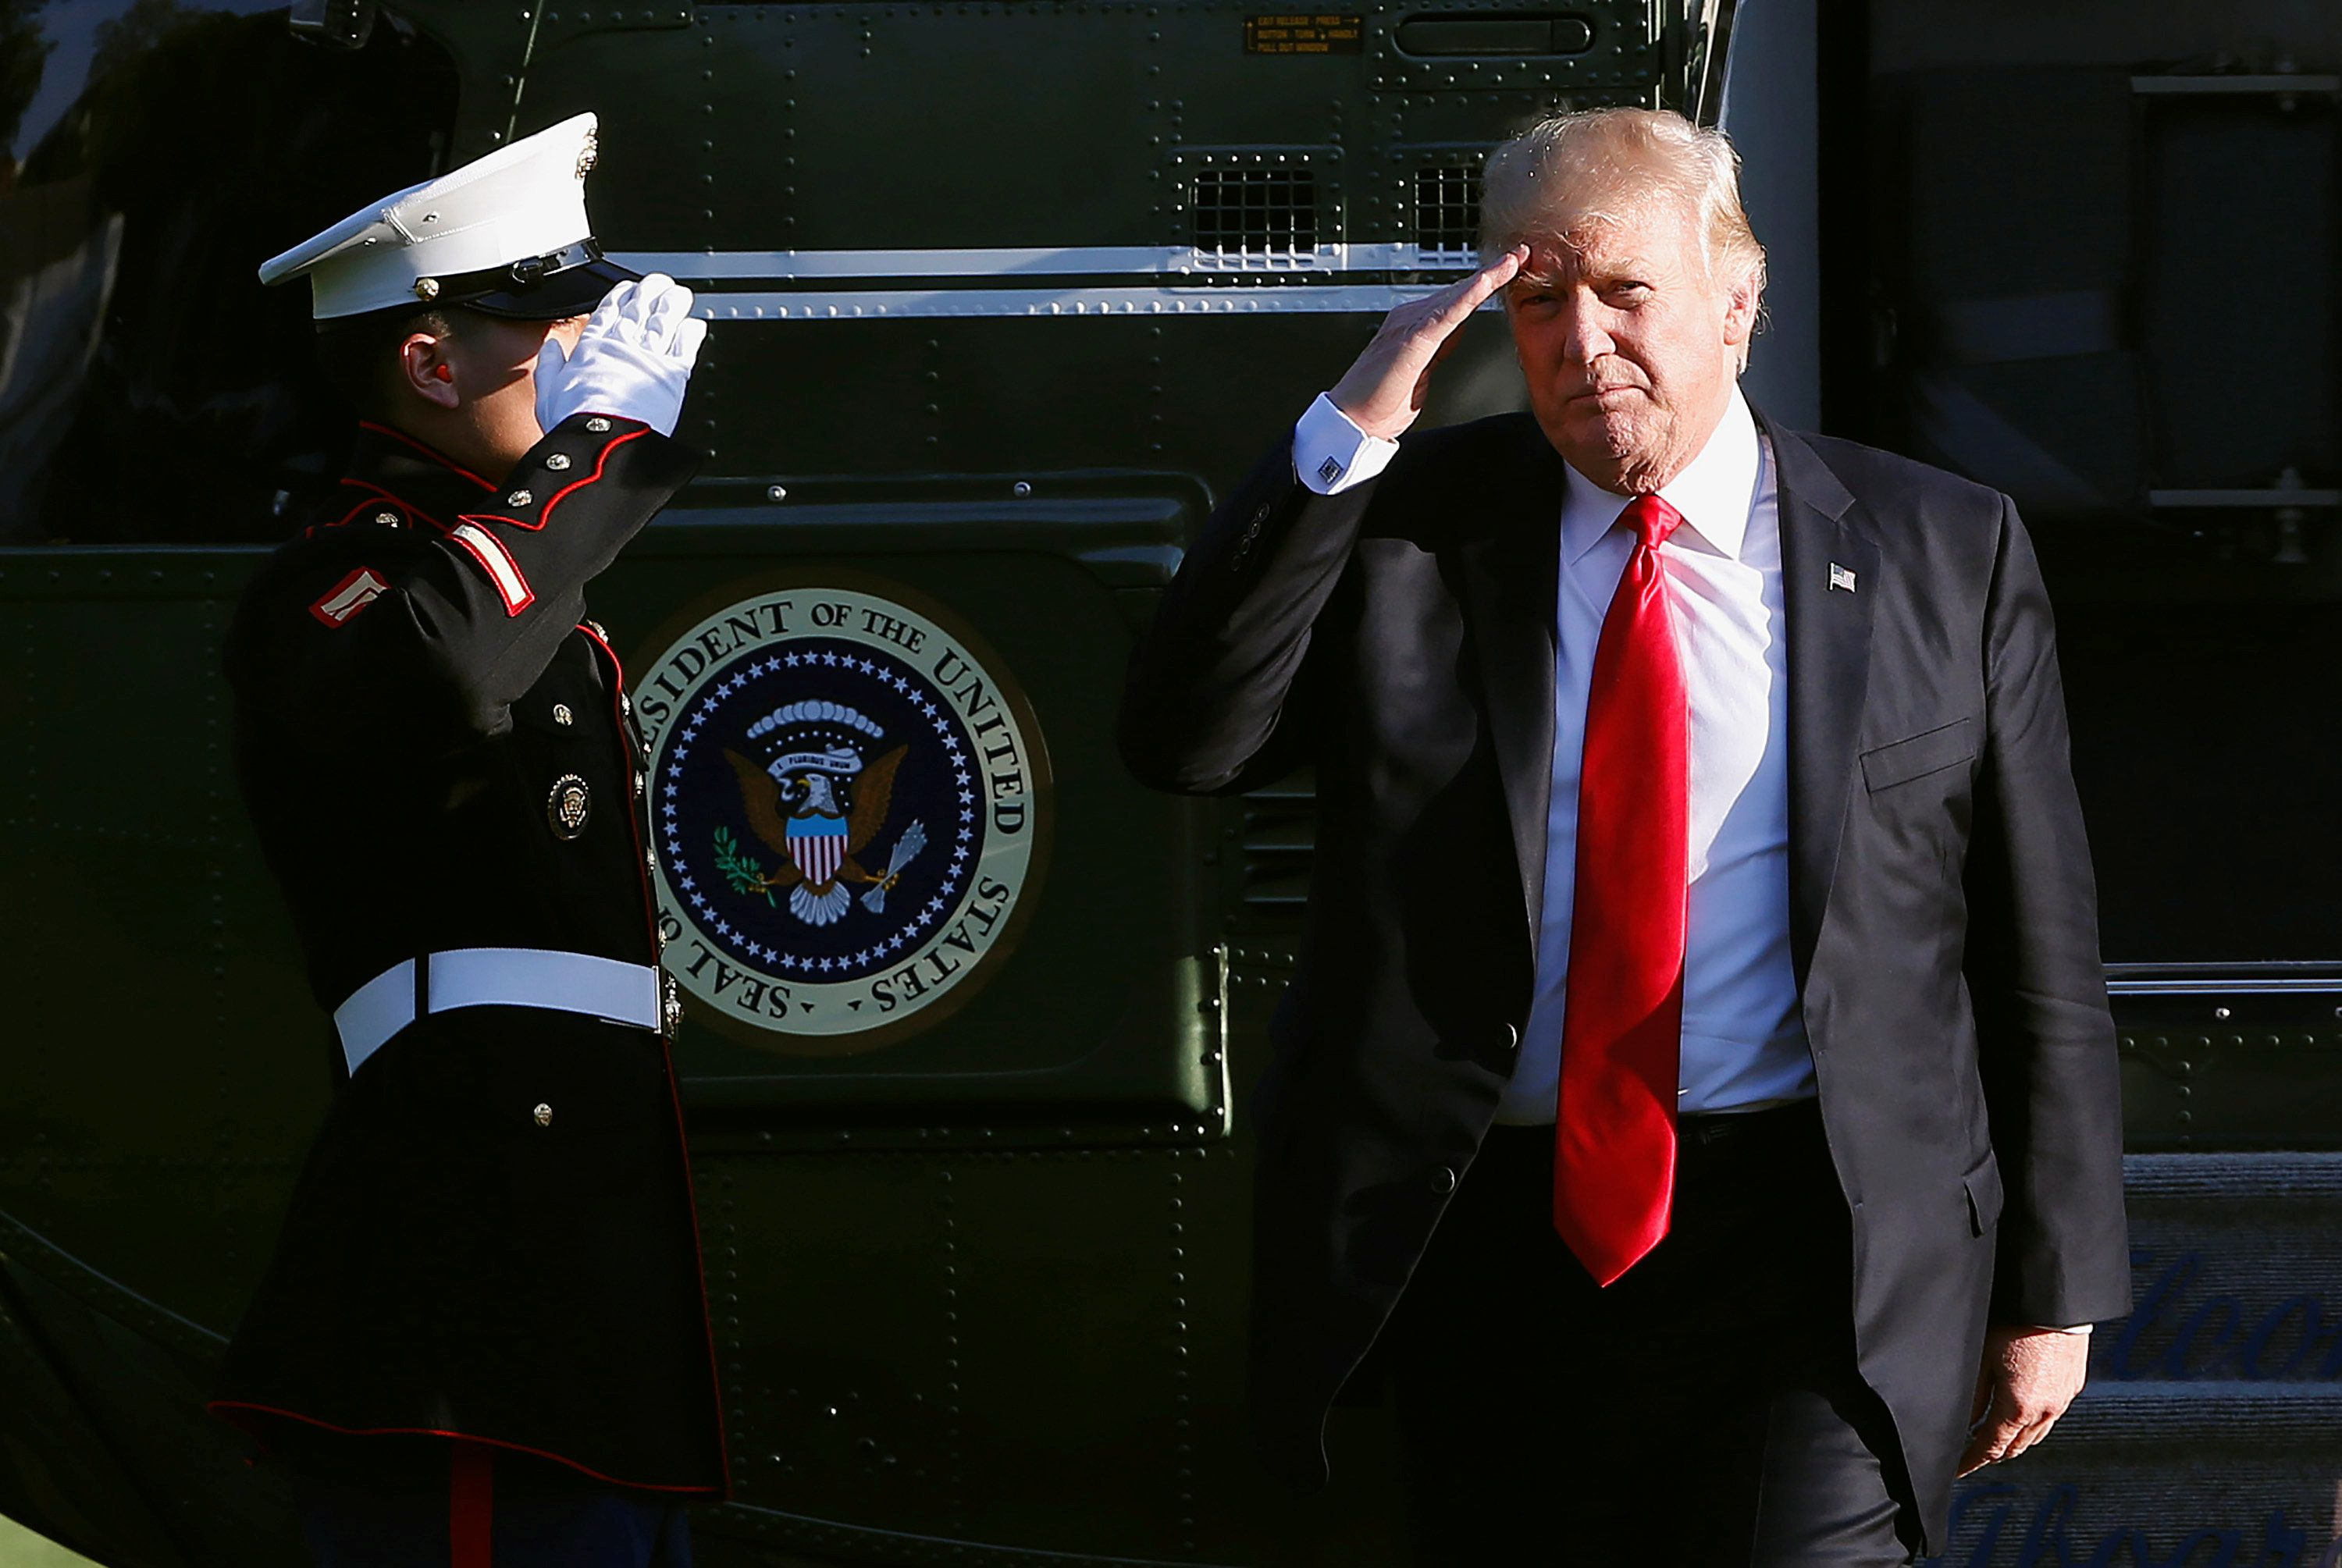 Donald Trump said an 'armada' was being sent in response to the North Korean